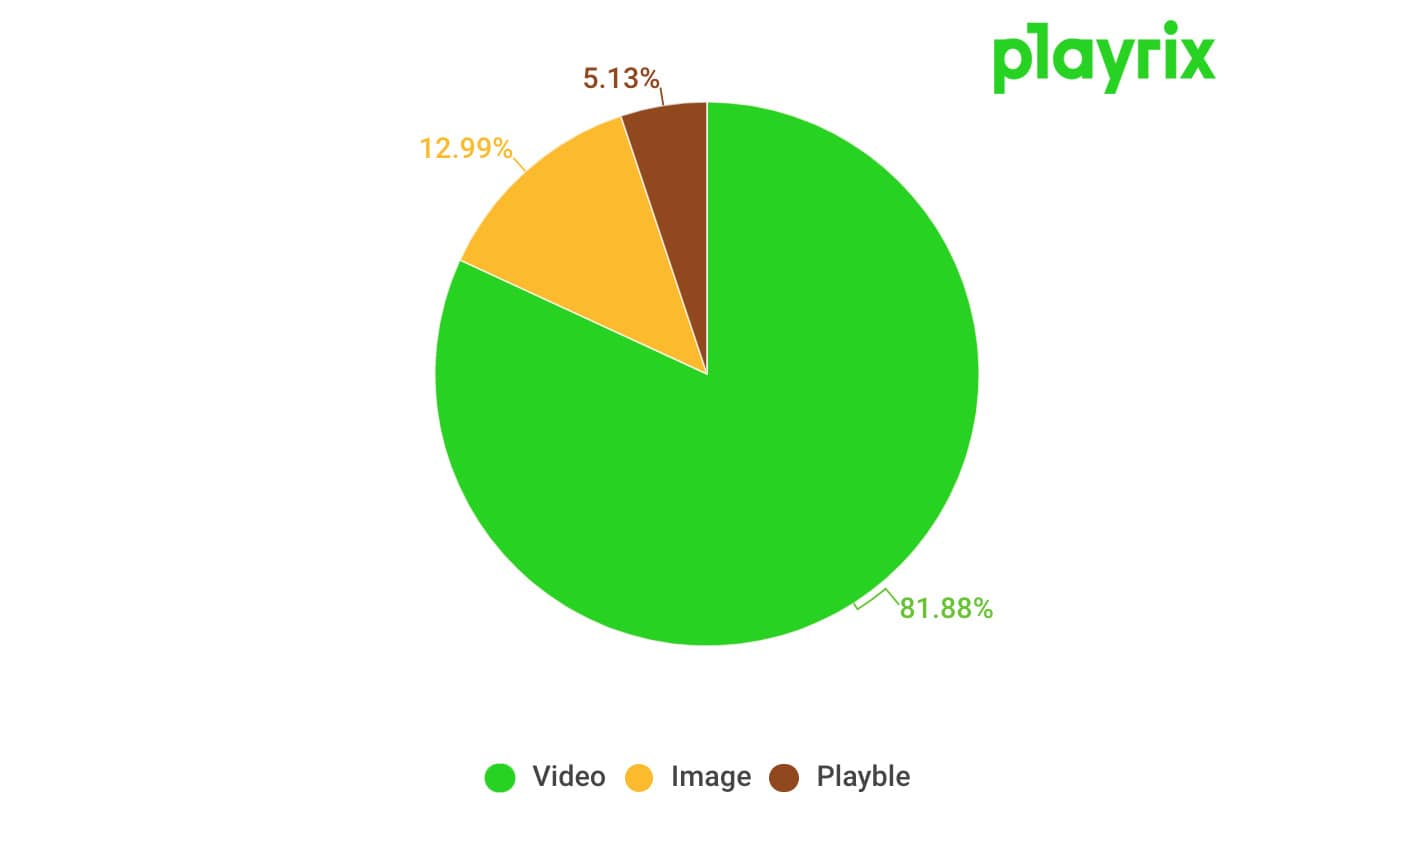 Playrix Ad Formats distribution in iOS & Android (September, 2017 - April, 2019)